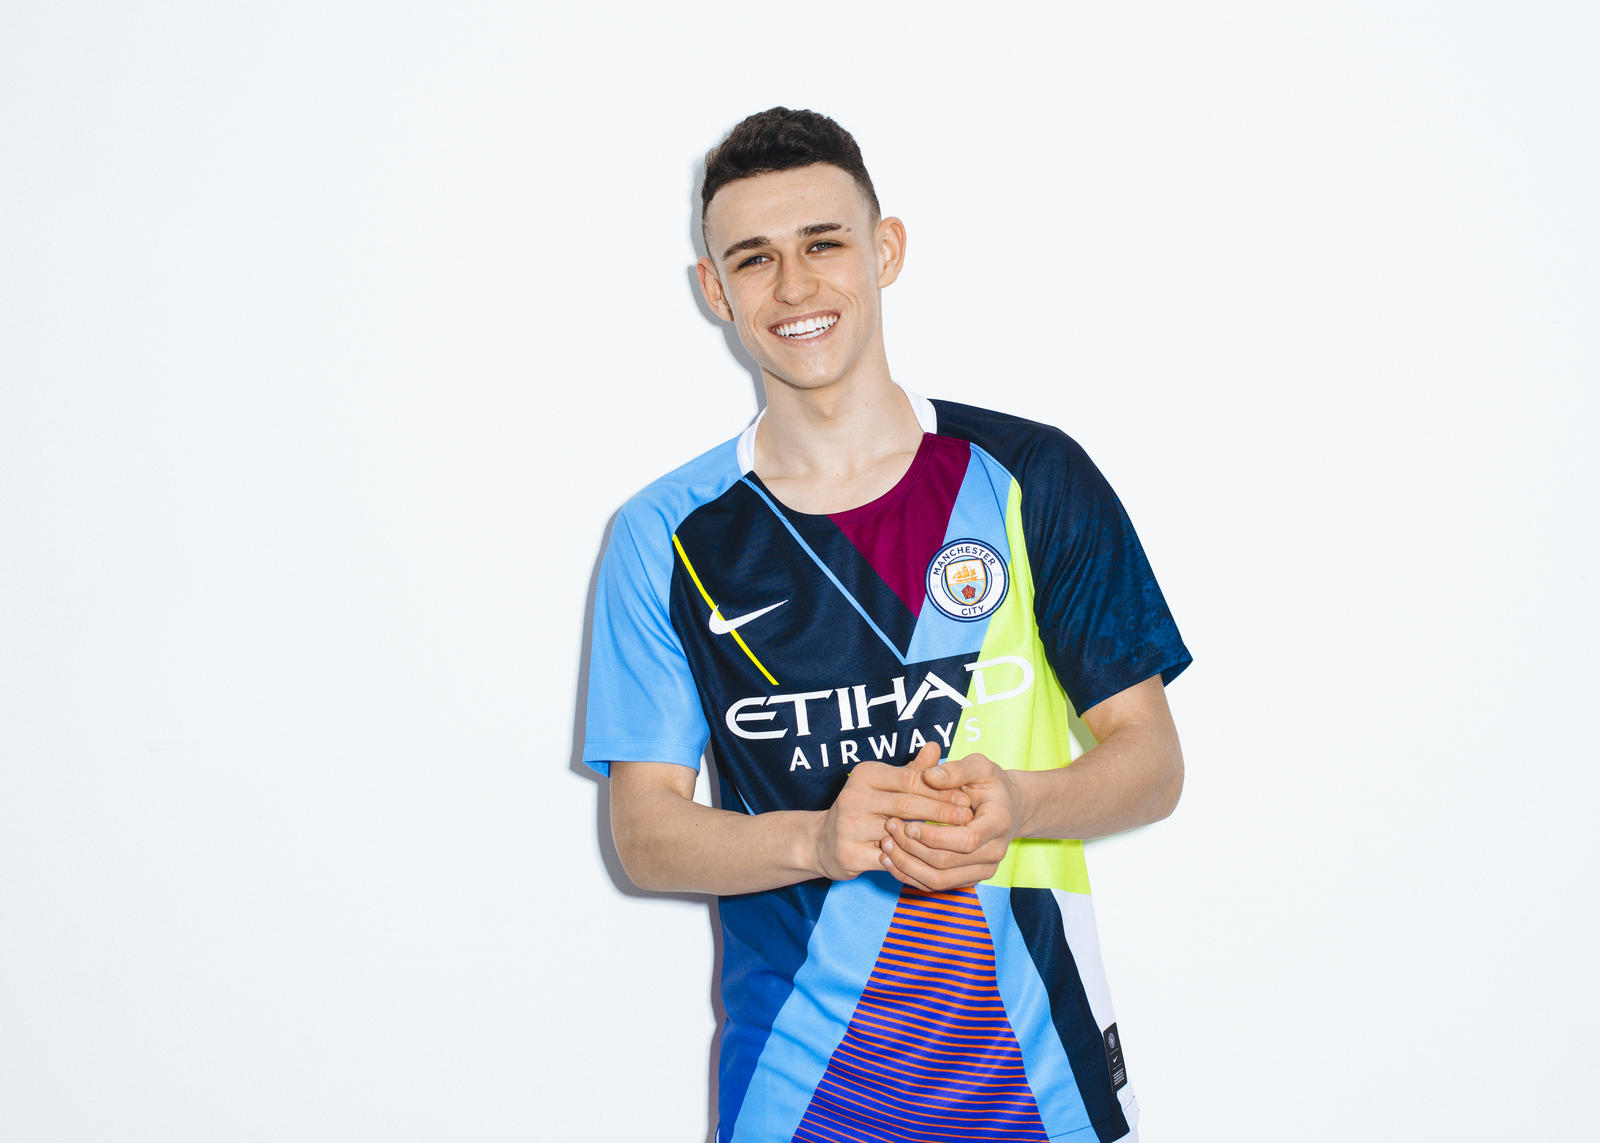 98b5b0d912e ... Click to enlarge image  nike x manchester city 2019 celebration mash-up jersey d.jpeg ...